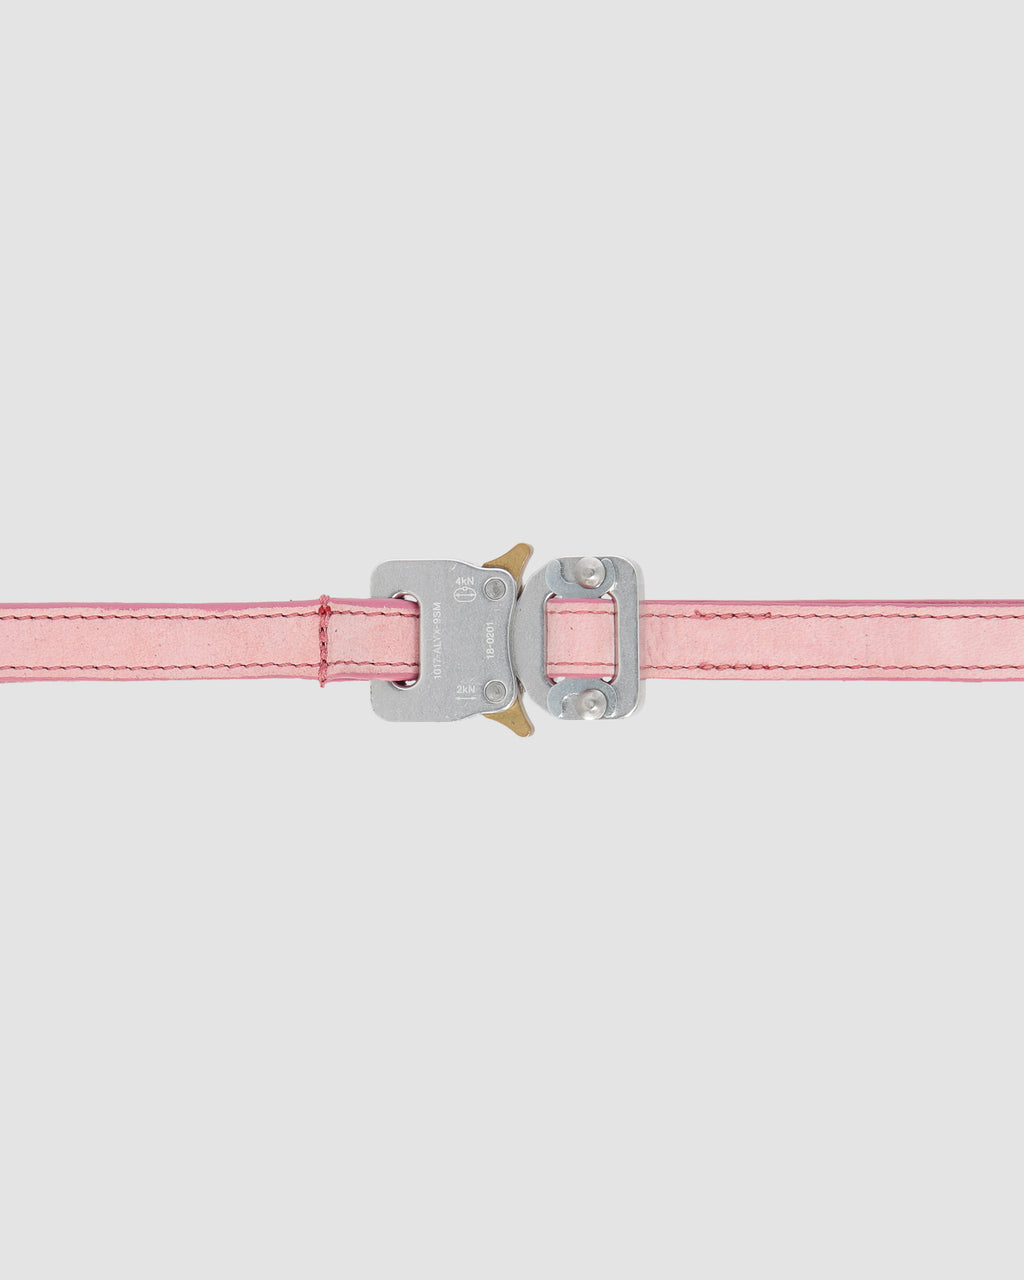 1017 ALYX 9SM | SMALL ROLLERCOASTER BELT | Belt | Accessories, Belt, BELTS, Google Shopping, Man, PINK, S20, S20 Drop II, UNISEX, Woman